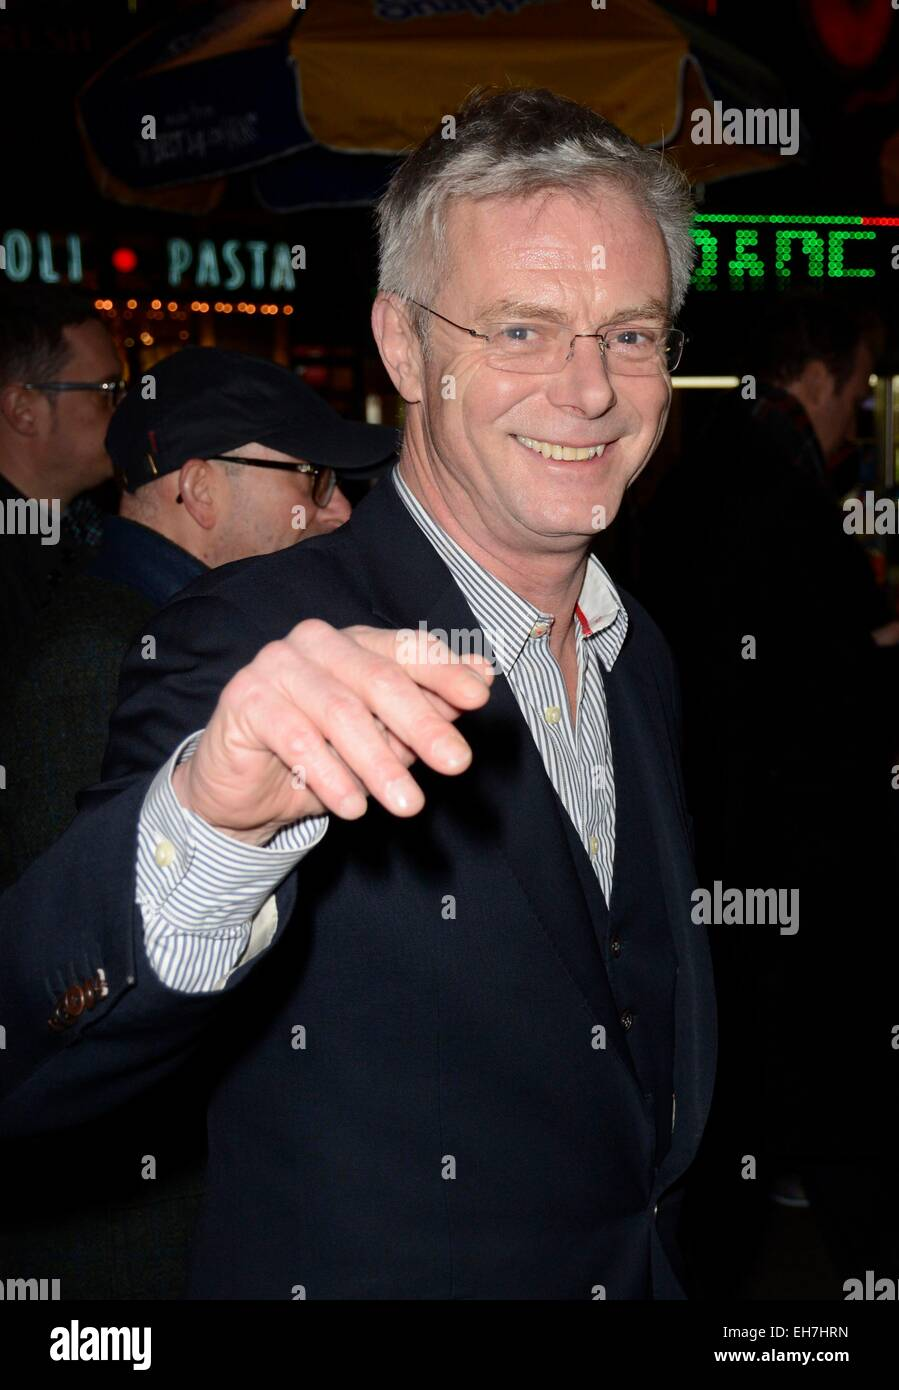 New York, NY, USA. 8th Mar, 2015. Stephen Daldry in attendance for THE AUDIENCE Opening Night on Broadway, Gerald Schoenfeld Theatre, New York, NY March 8, 2015. Credit:  Derek Storm/Everett Collection/Alamy Live News Stock Photo